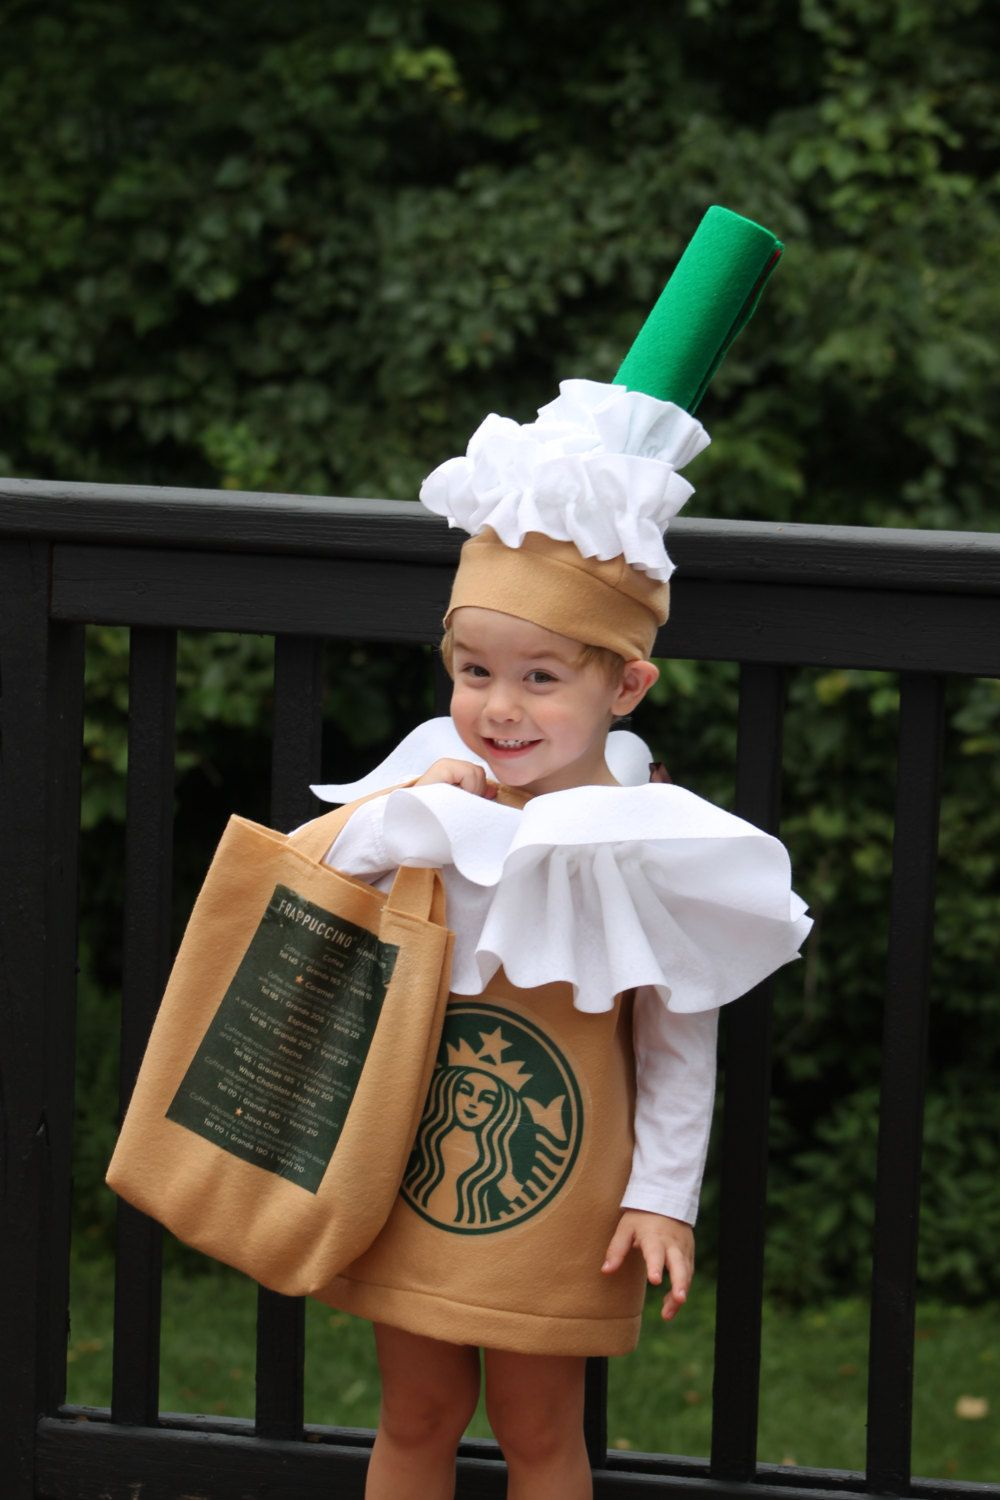 26 Best Halloween Costumes for Kids 2018 - Cute Ideas for Childrens Costumes  sc 1 st  Good Housekeeping & 26 Best Halloween Costumes for Kids 2018 - Cute Ideas for Childrens ...